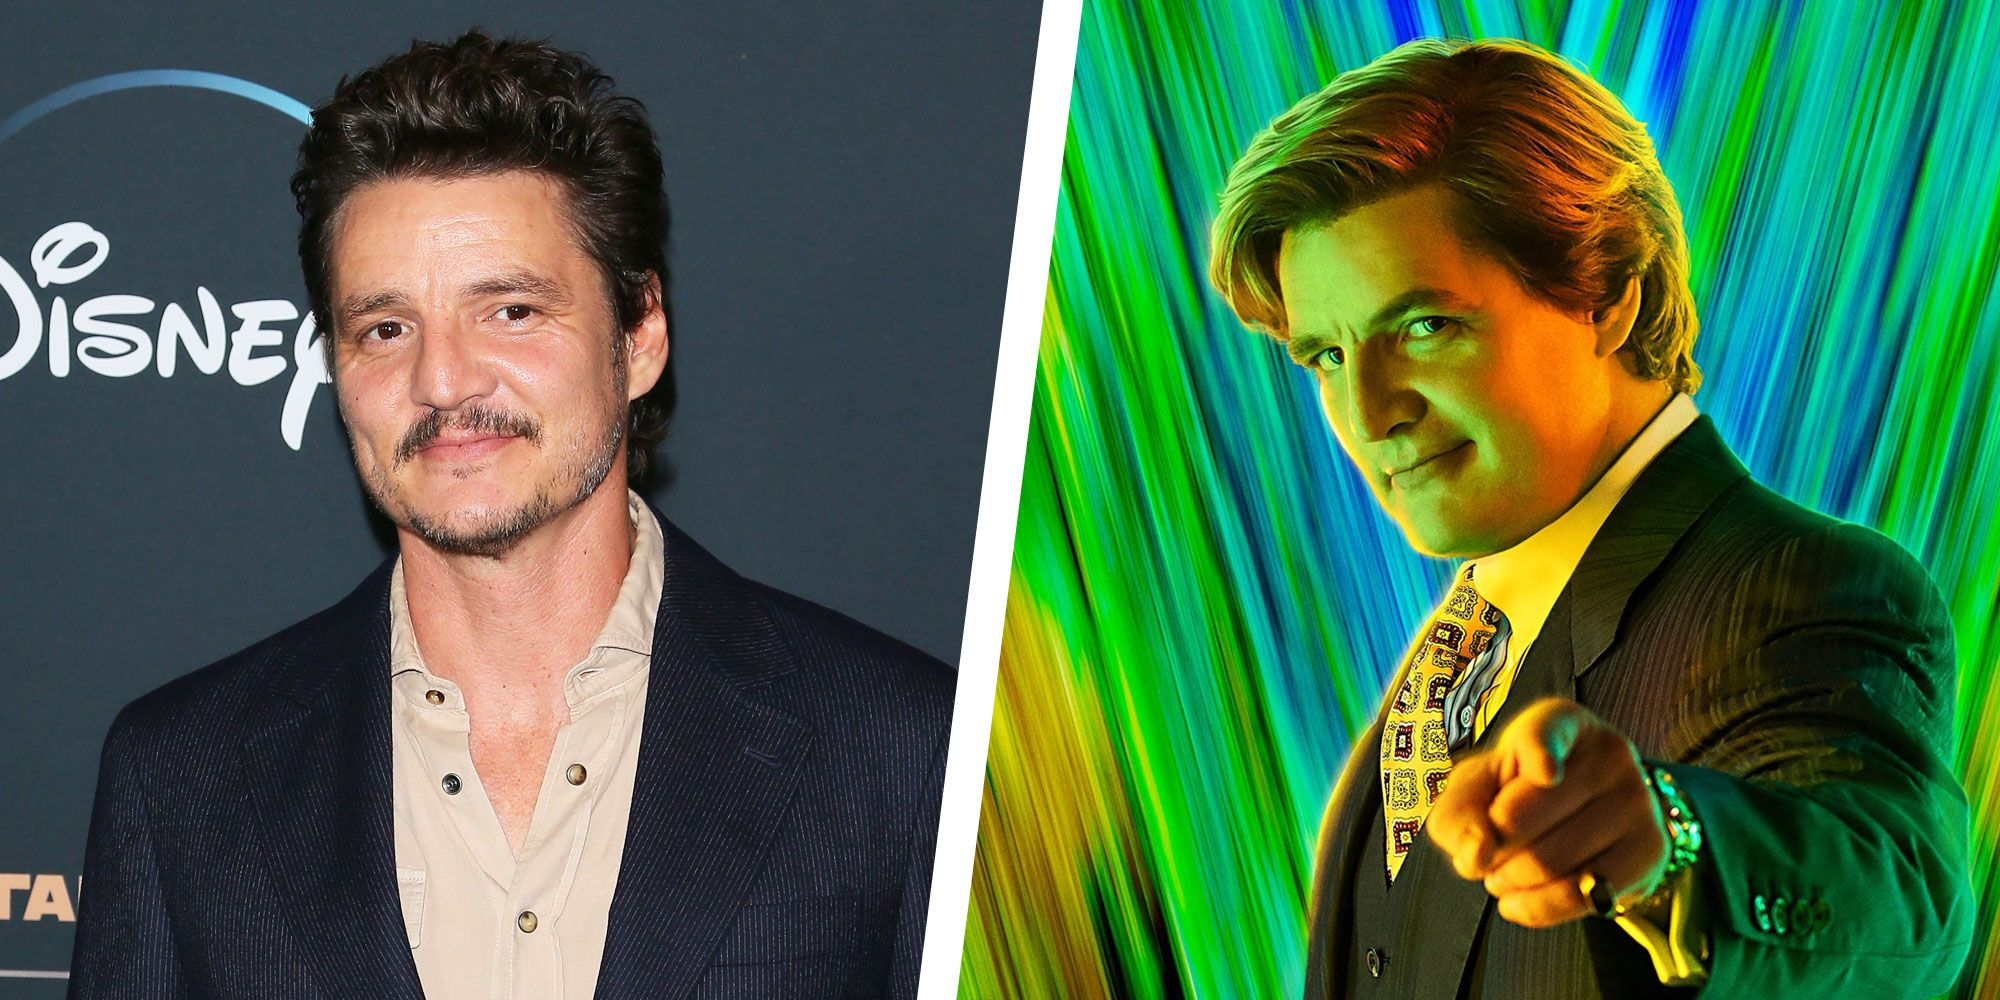 Pedro Pascal and Fans React to His Wonder Woman 1984 Character